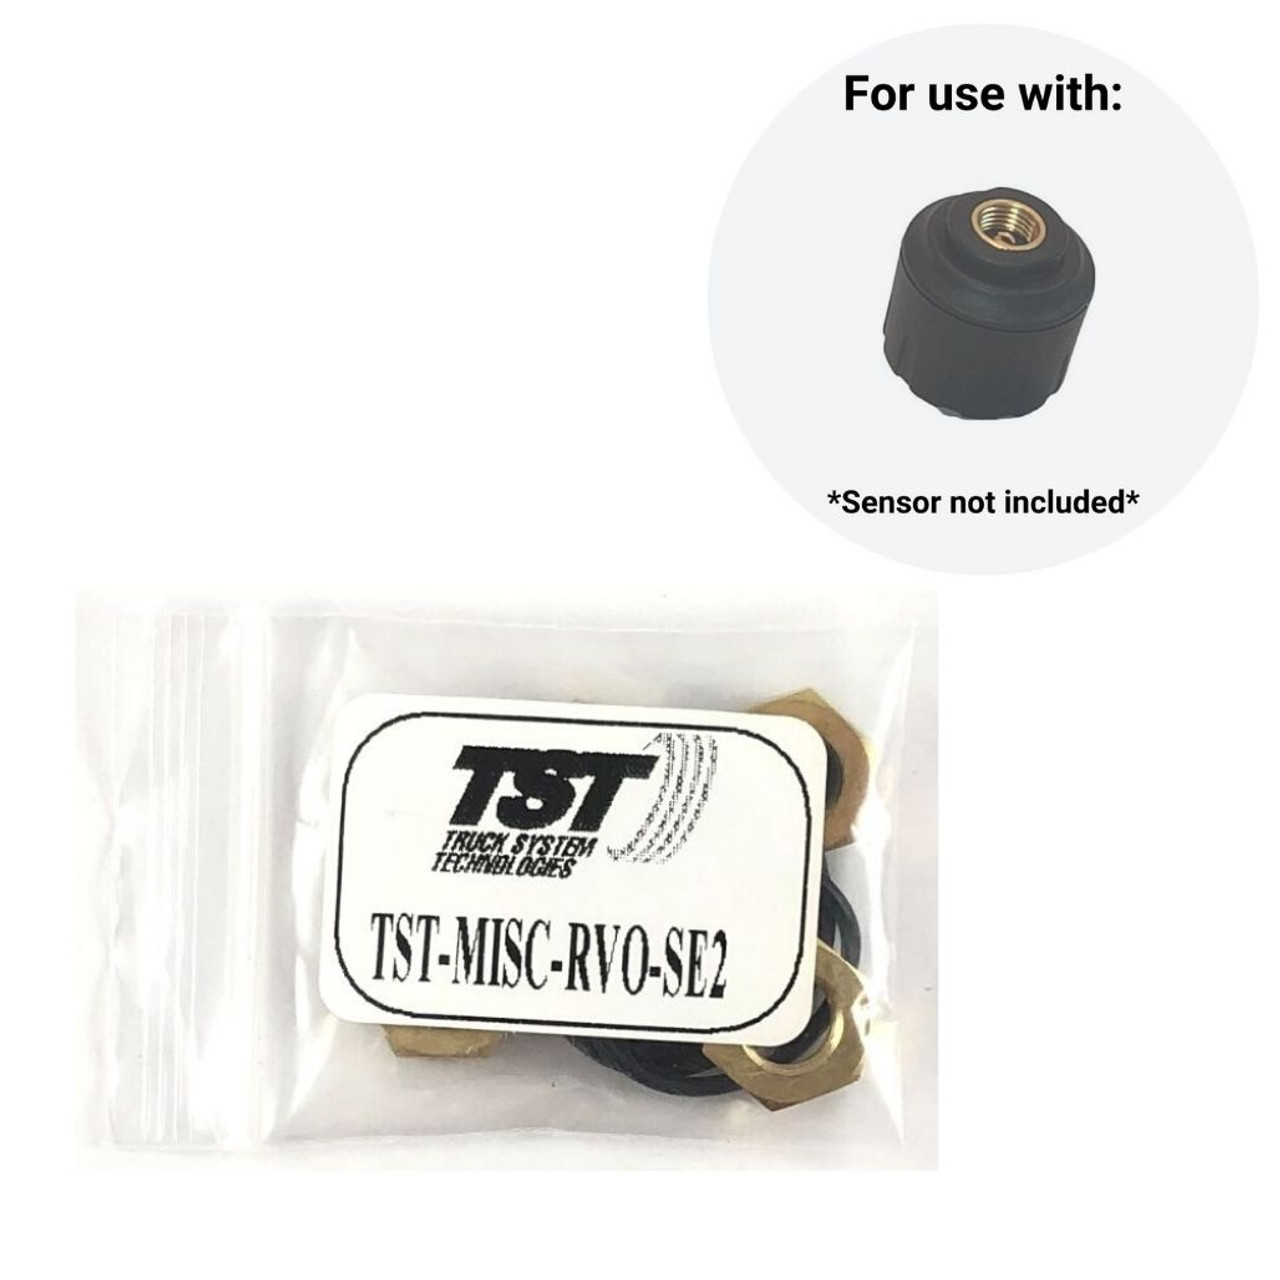 O-Ring Kit for TST Cap Sensor (2nd Generation)